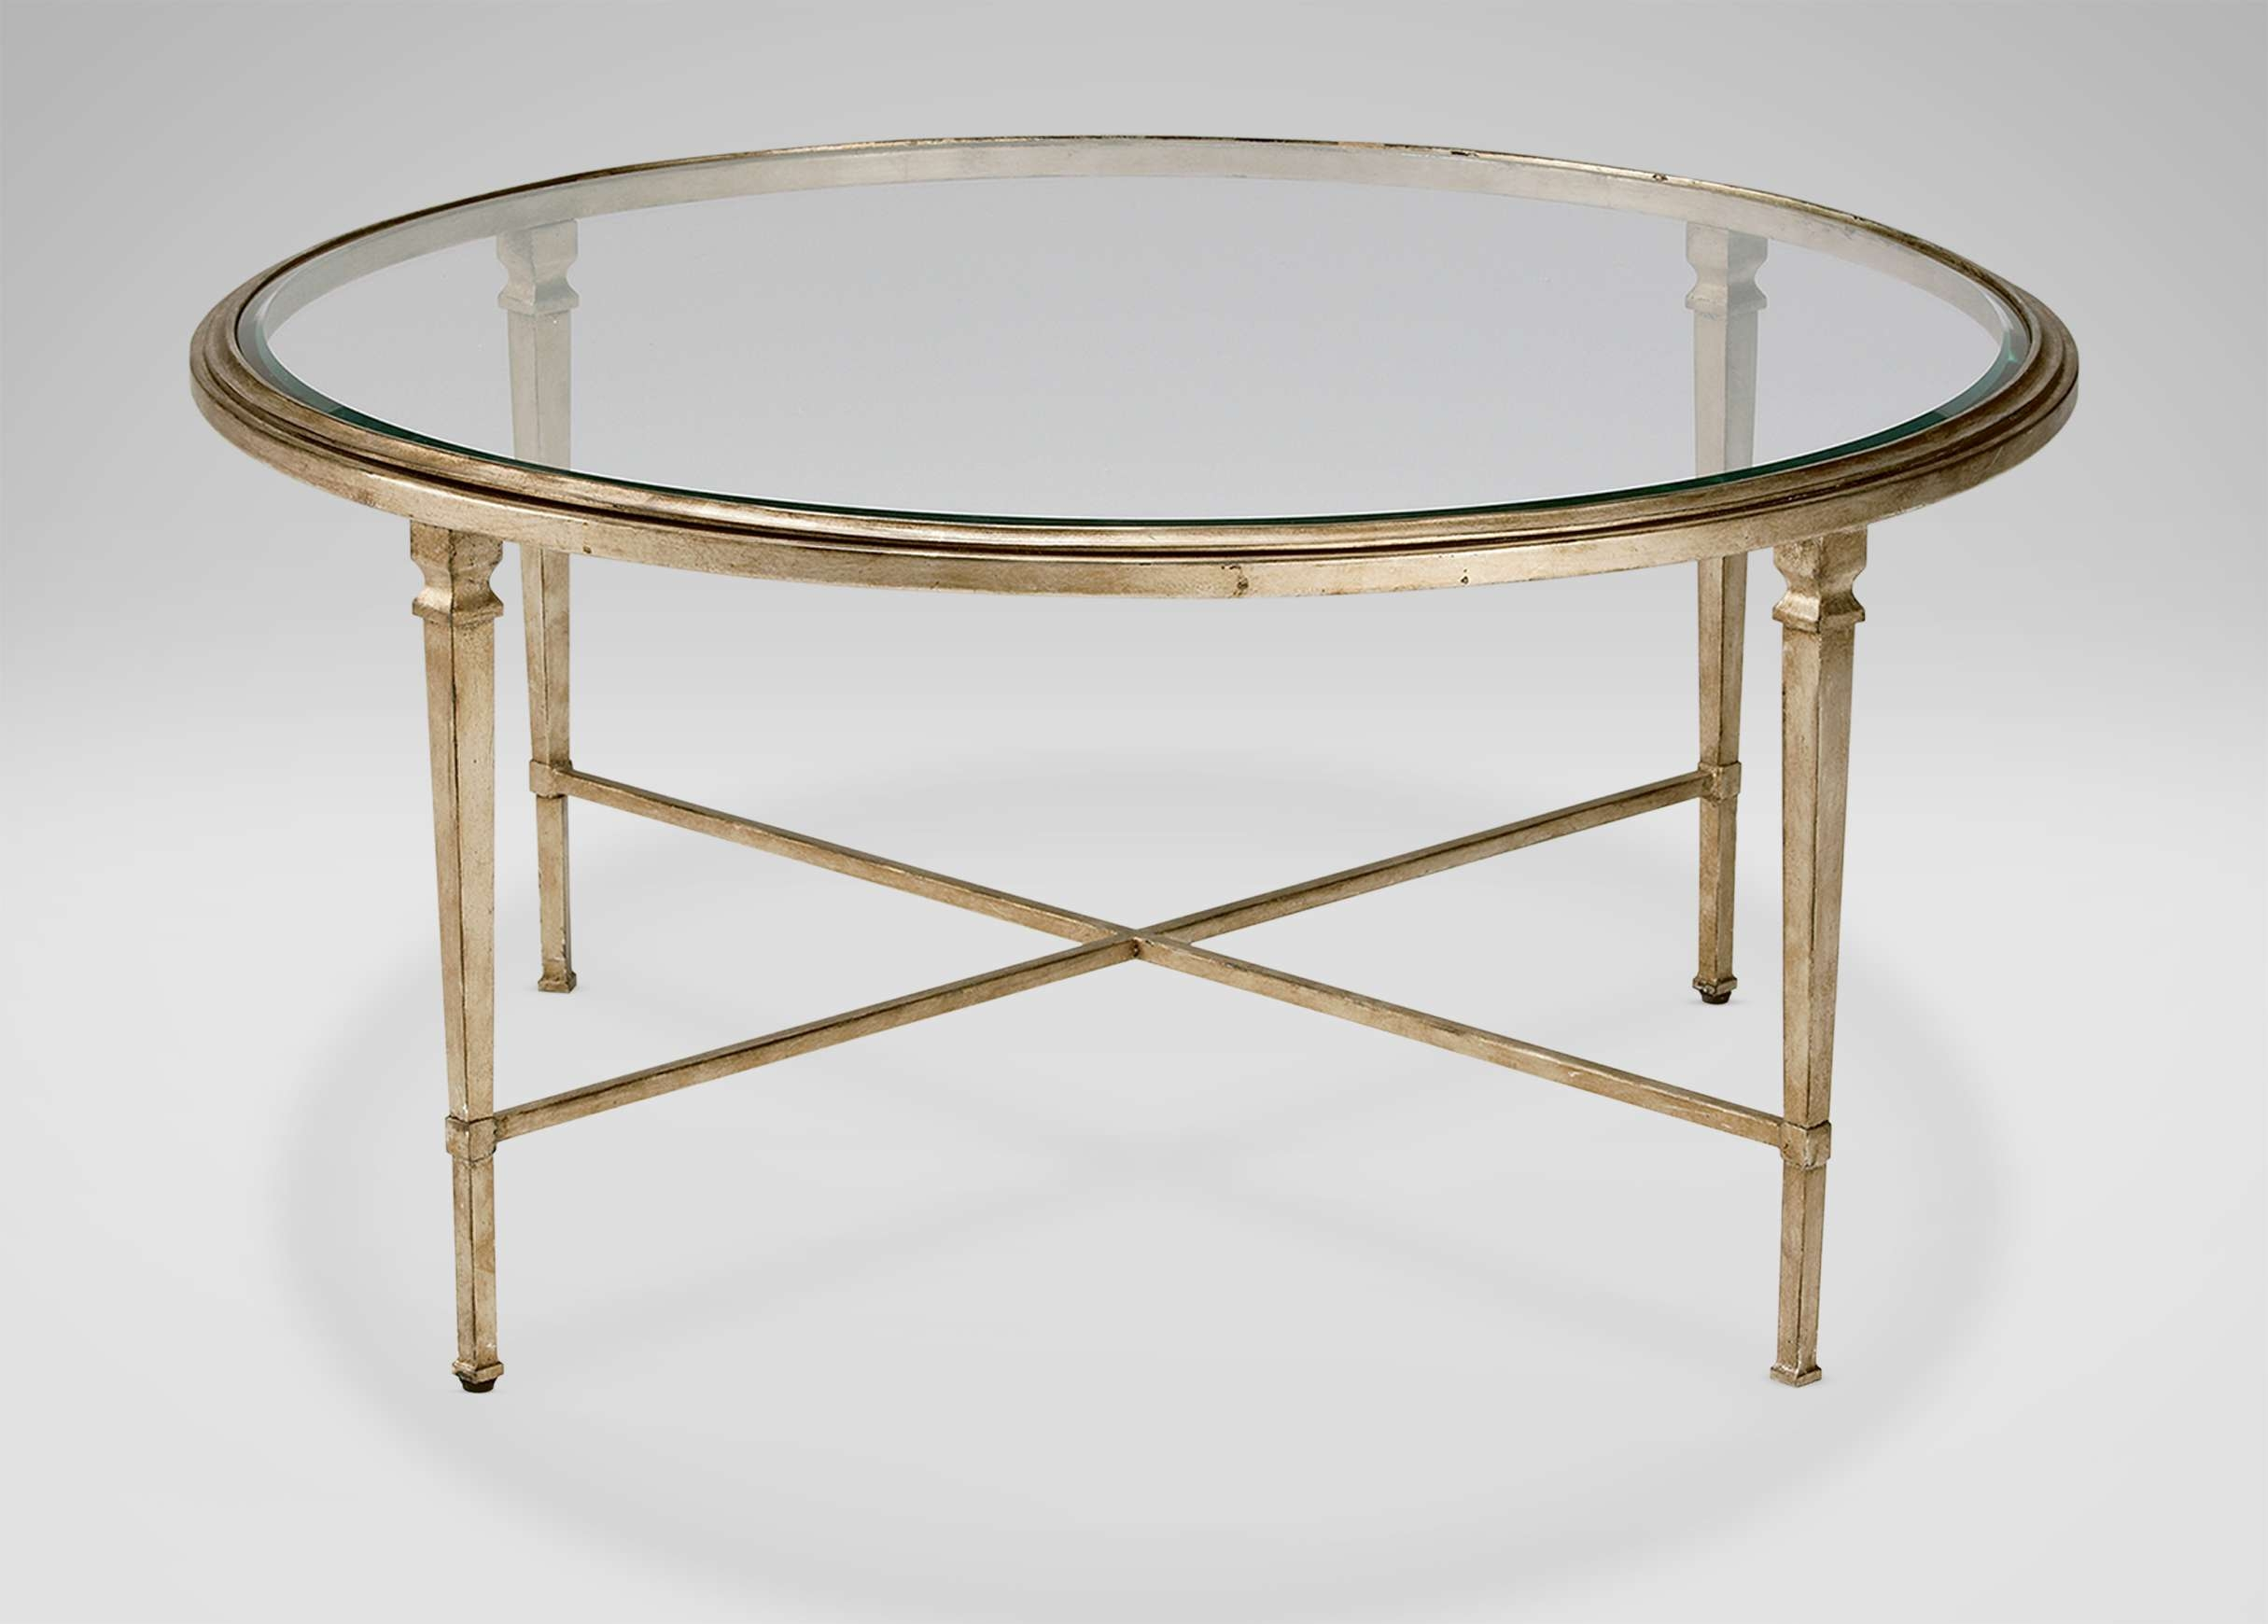 Newest Bronze And Glass Coffee Tables Throughout Coffee Table : Fabulous Contemporary Coffee Table / Glass / Brass (View 16 of 20)